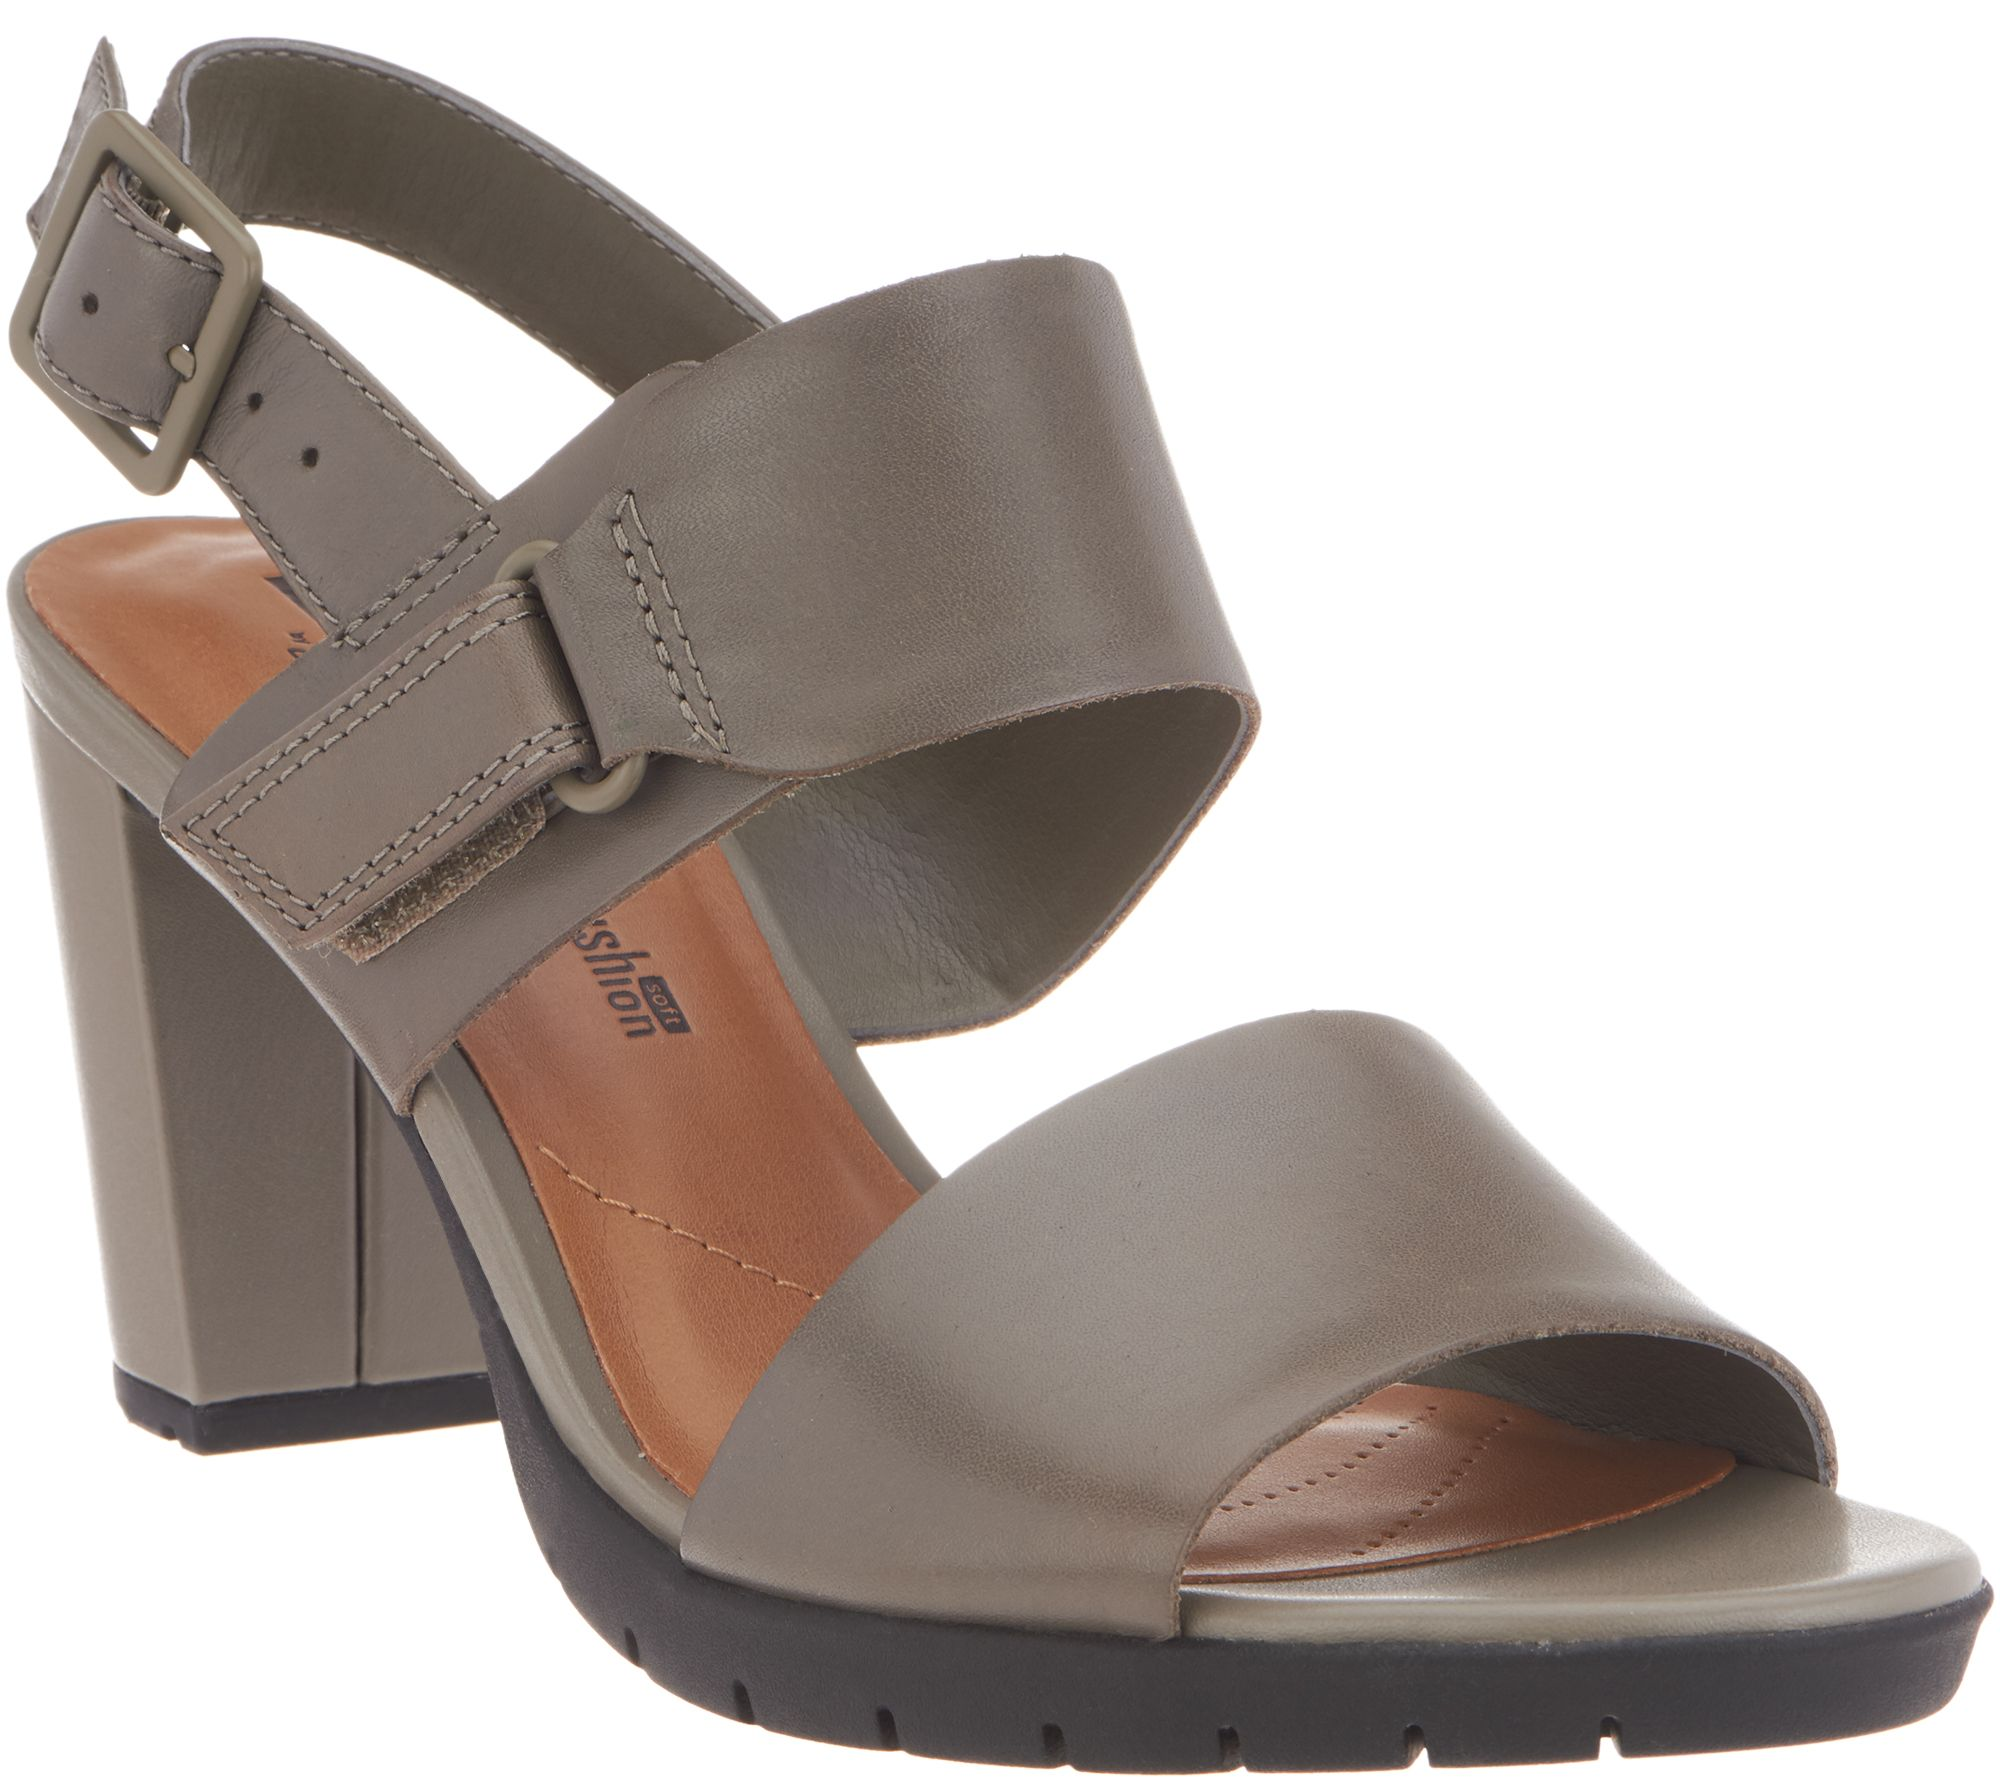 6202dee01a9 Clarks Leather Block Heel Adjustable Sandals - Kurtley Shine - Page 1 —  QVC.com